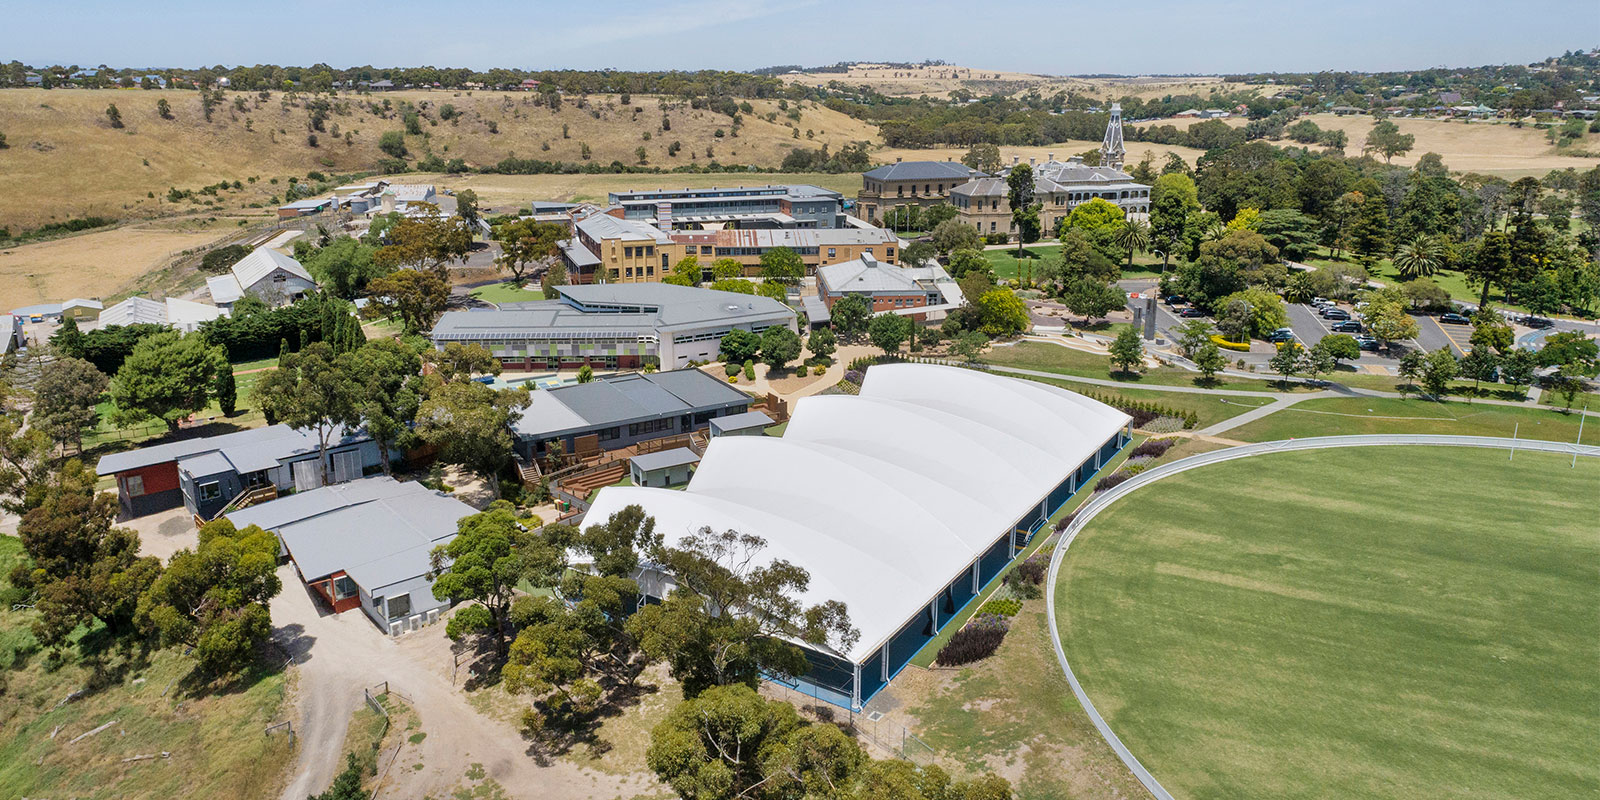 Sports Court Canopy at Salesian College in Sunbury, VIC